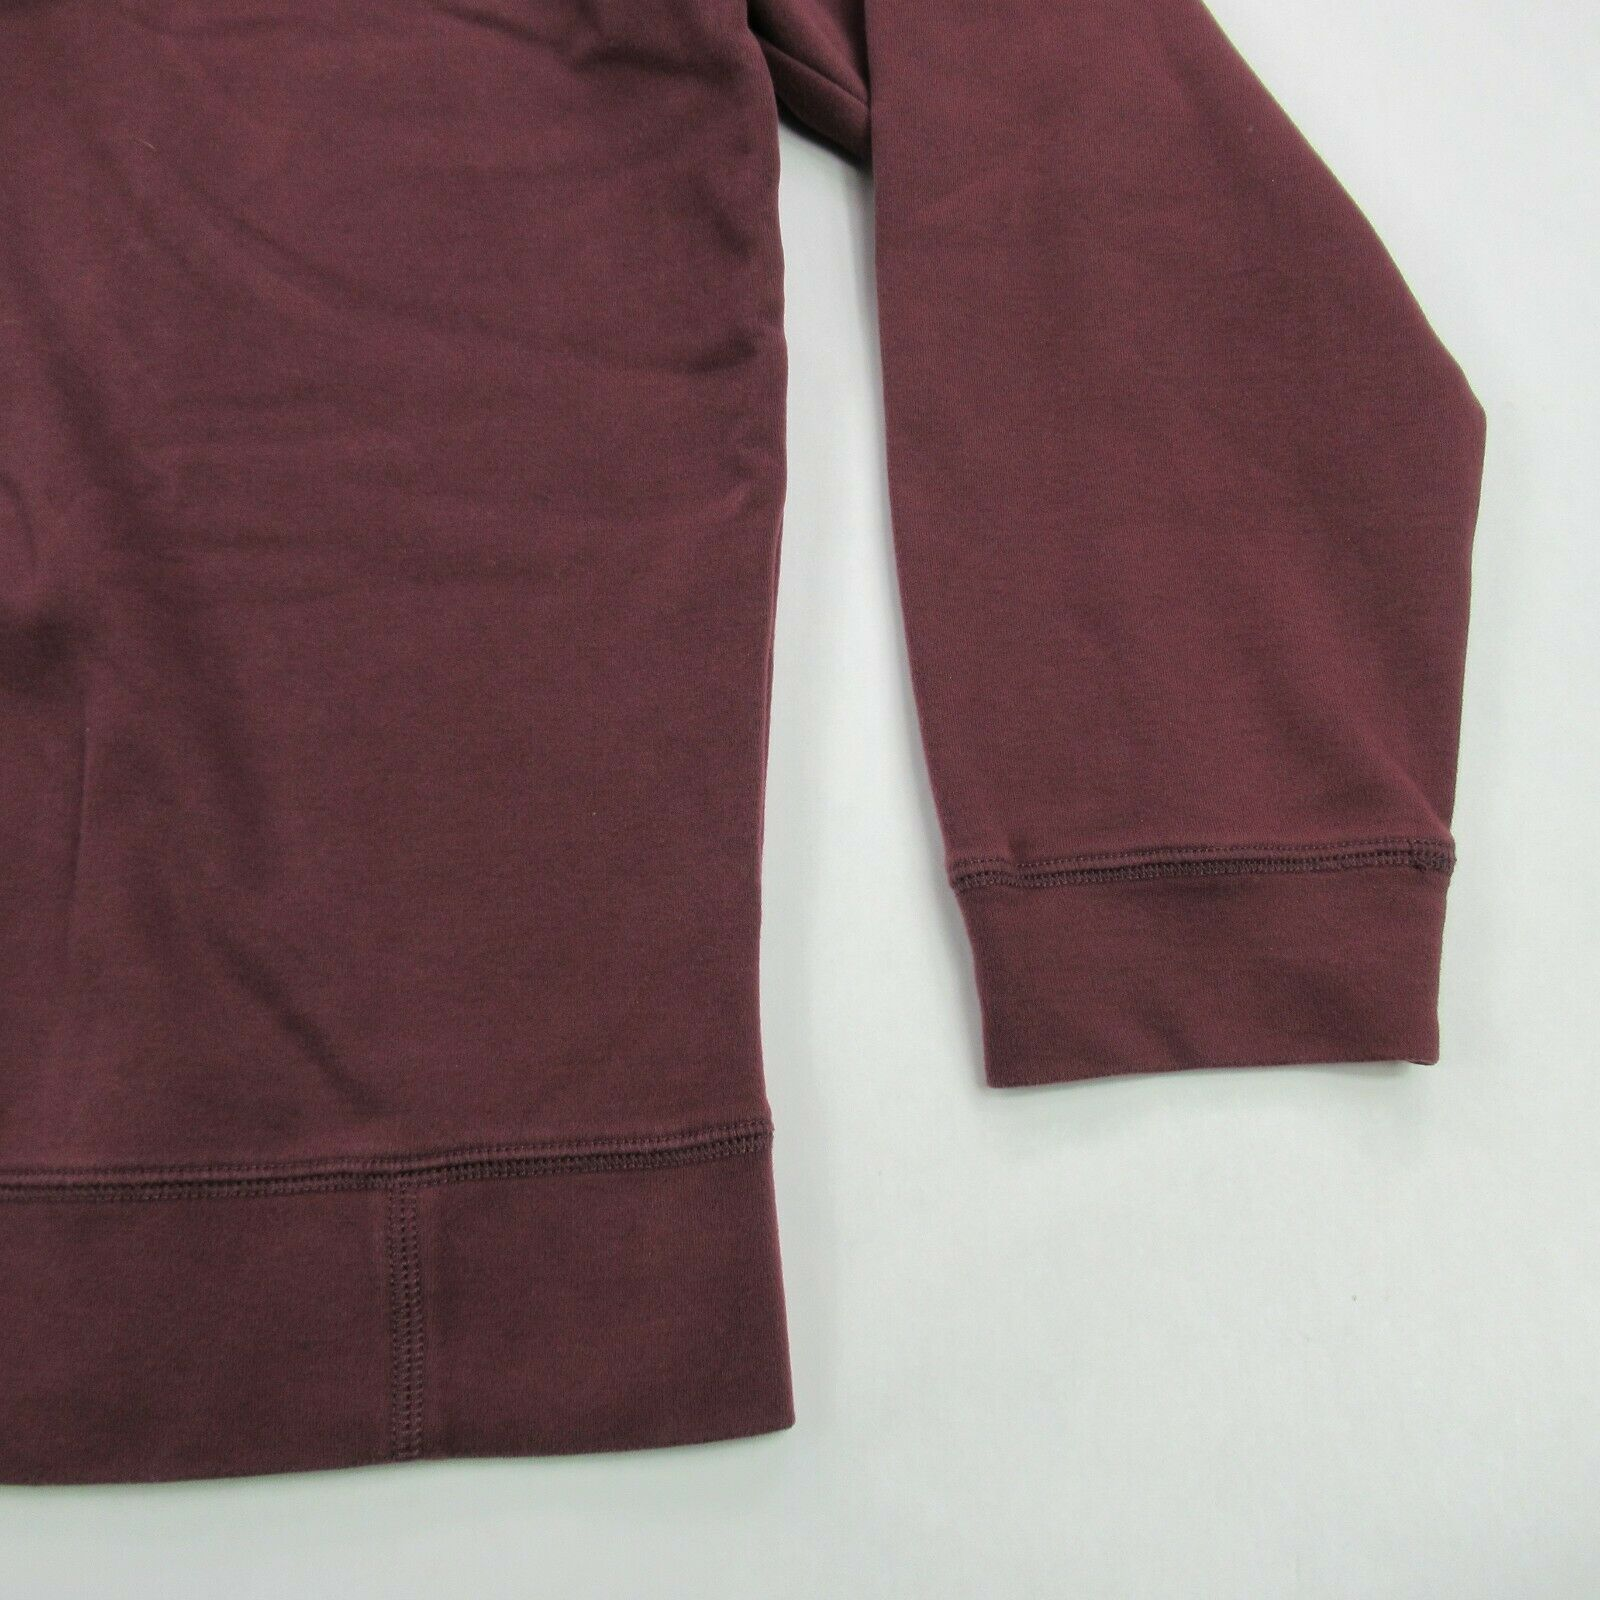 Product Image 1 - Tommy Bahama Sweater Mens XL